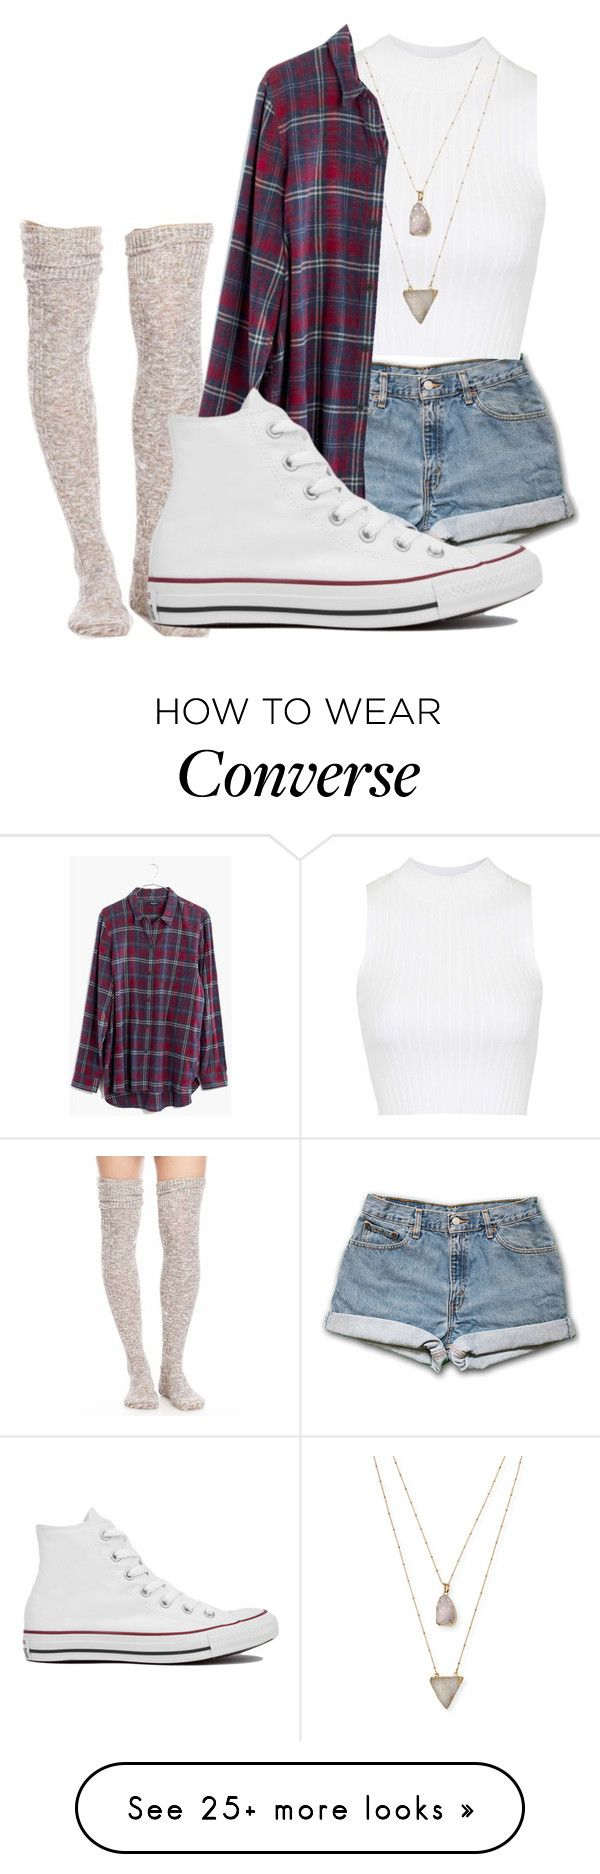 """""""Shorts w/ plaid and converse"""" by anasush on Polyvore featuring moda, Free People, Topshop, Panacea, Madewell y Converse"""